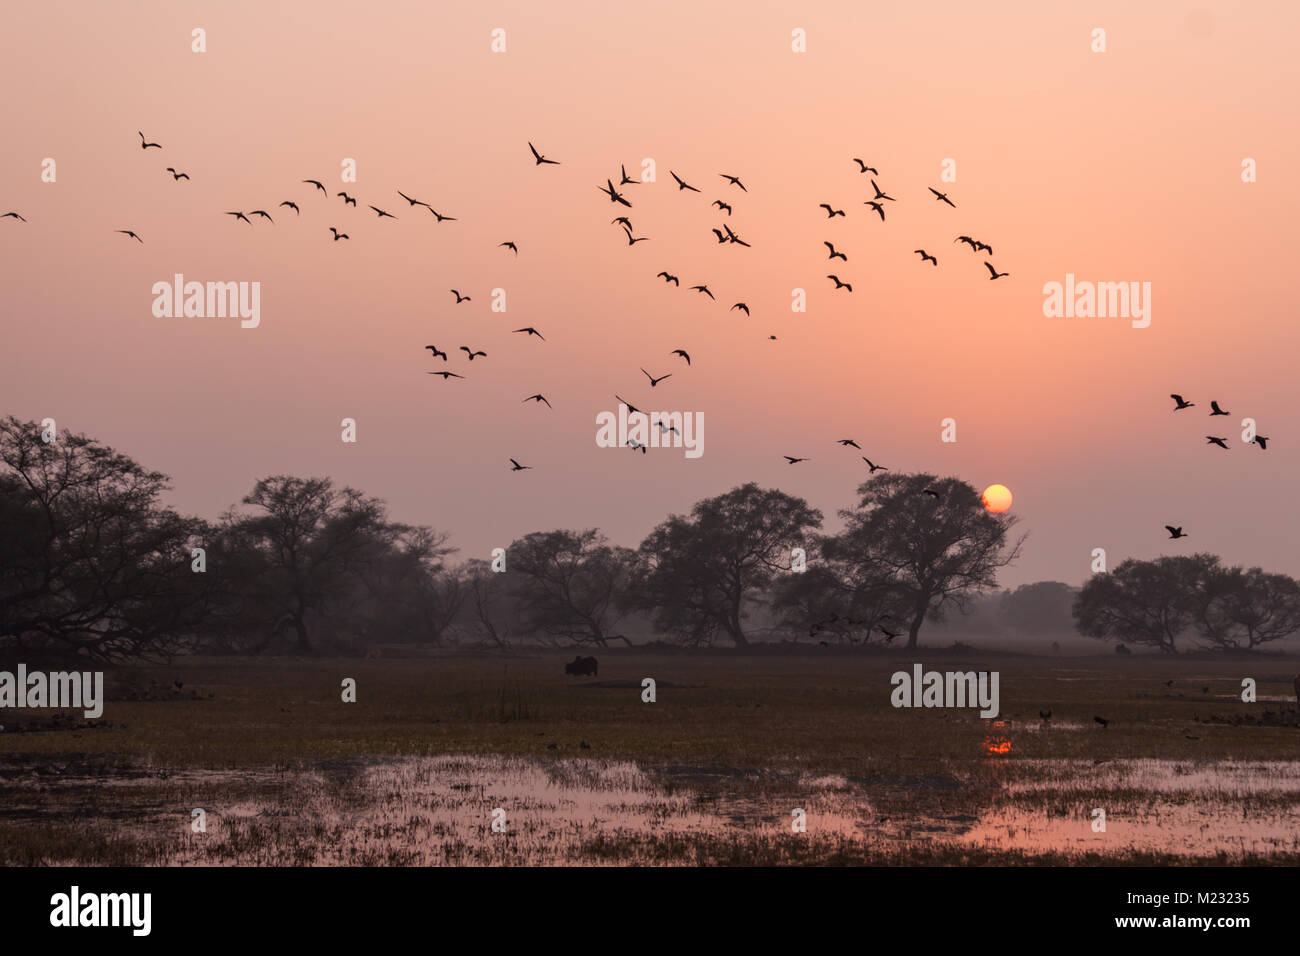 migratory birds flying in sky at sunset in Bharatpur Bird Sanctuary in Rajasthan, India - Stock Image